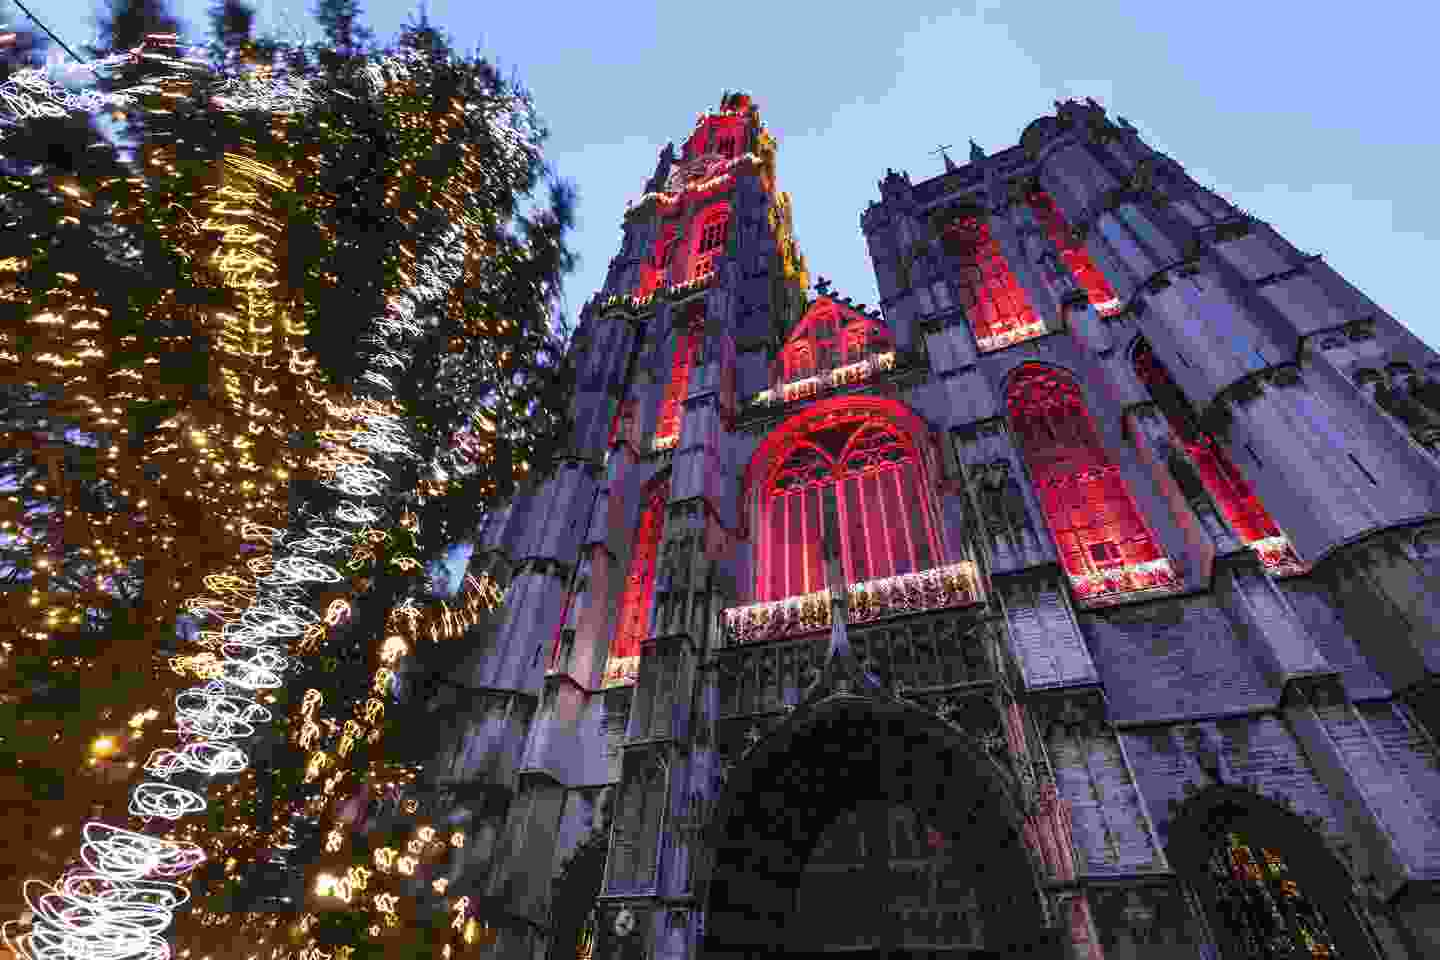 Cathedral of our Lady, Antwerp (Dreamstime)